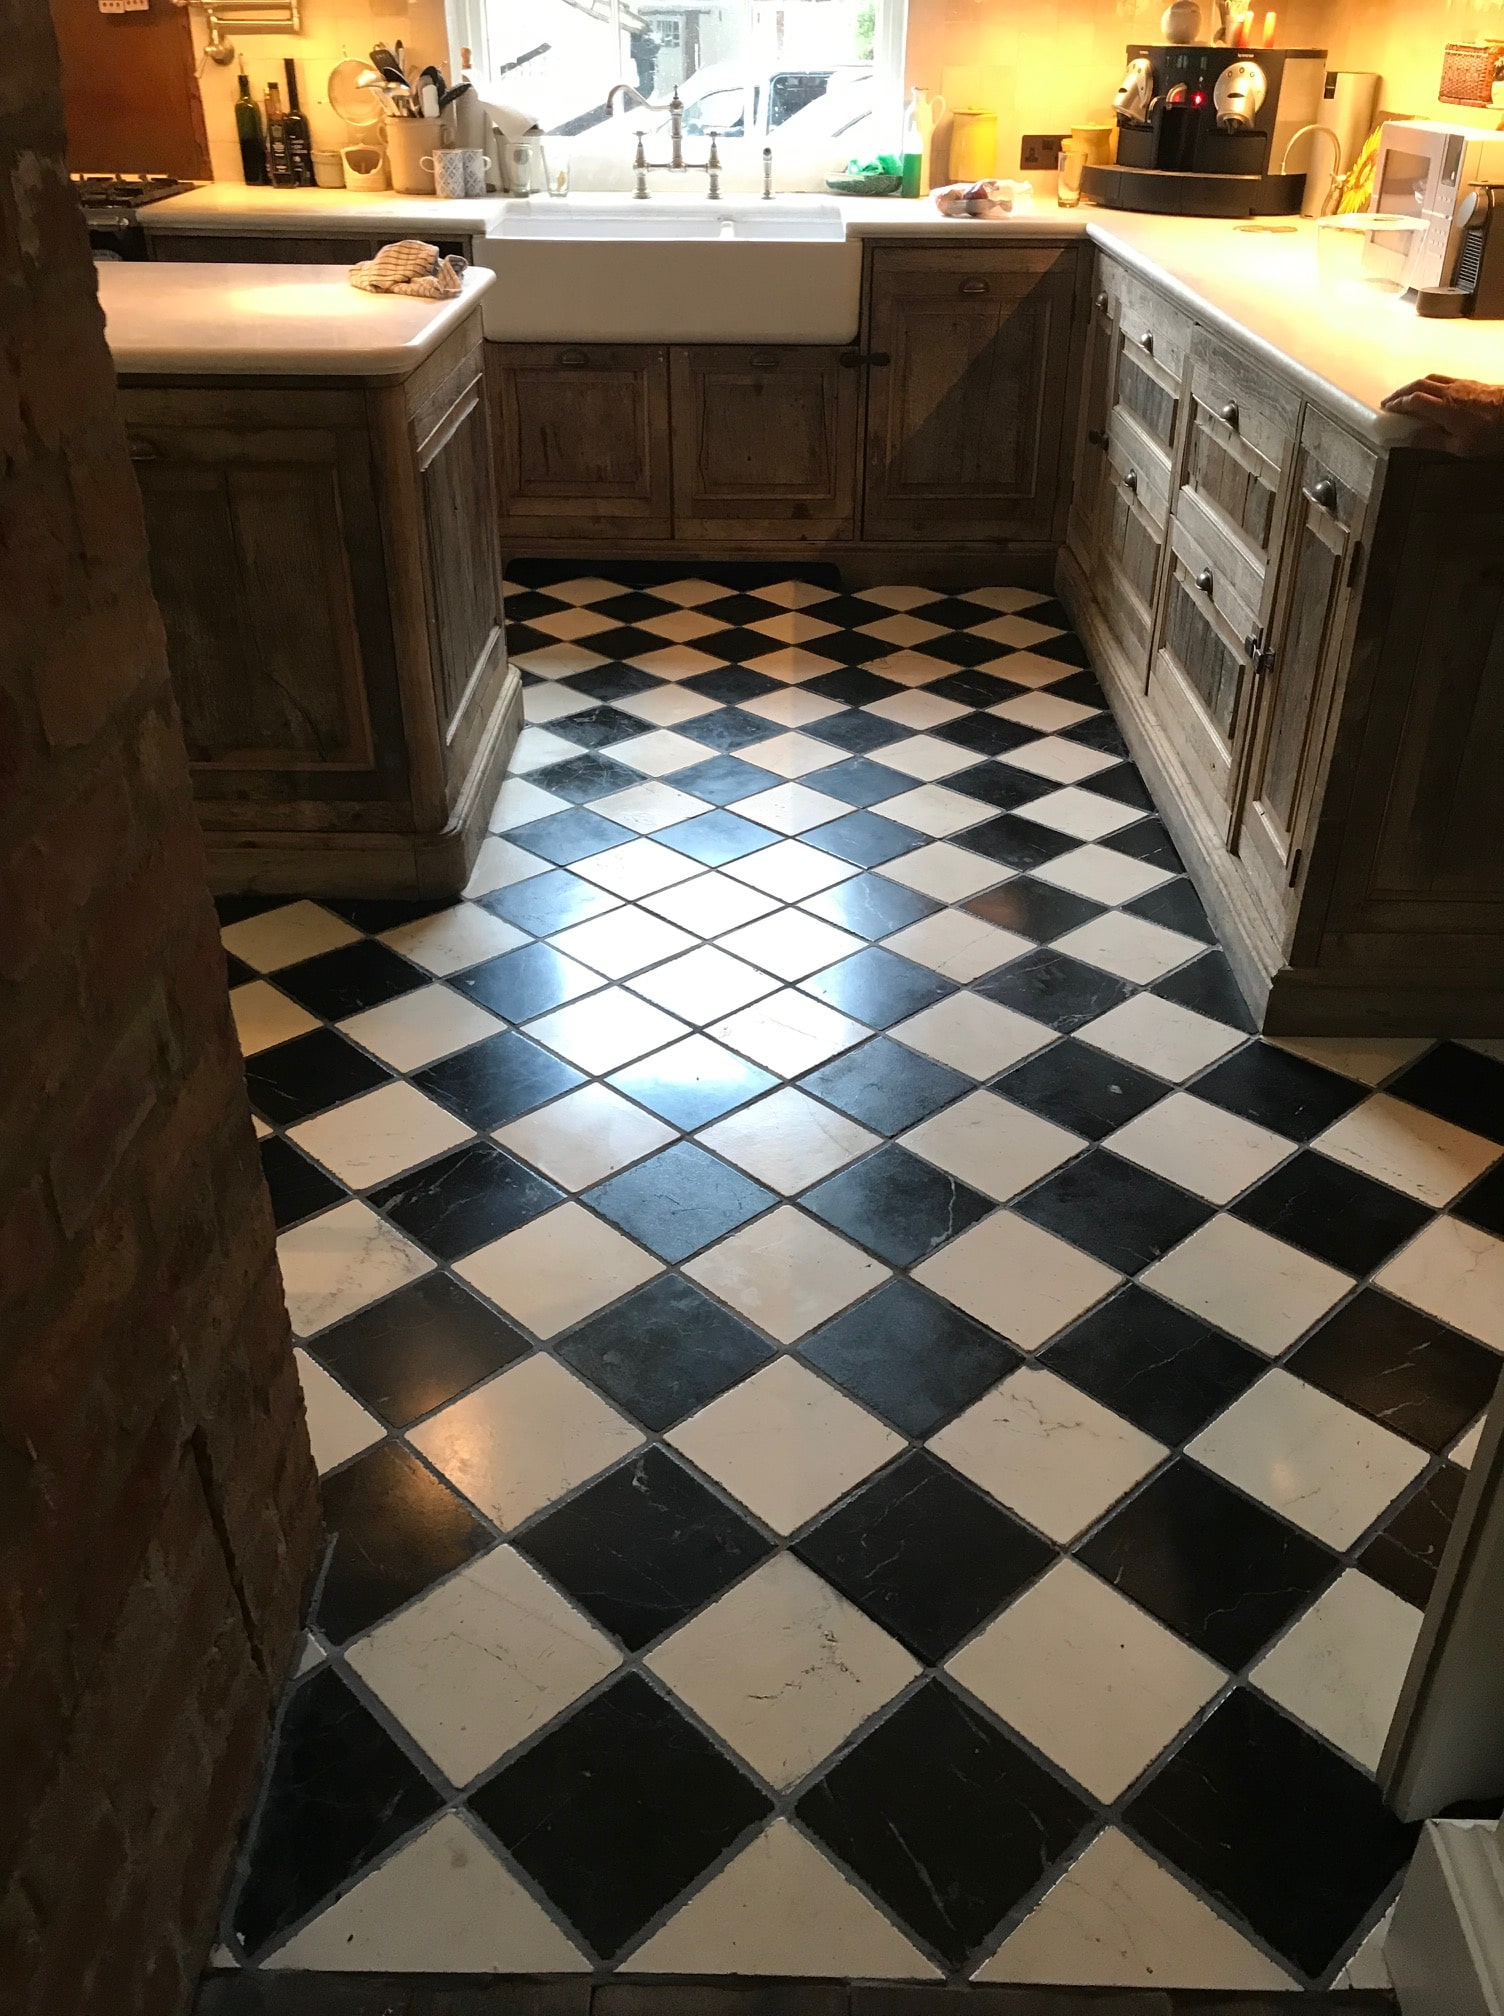 Classic Black and White Marble Kitchen Floor After Renovation Bamber Bridge